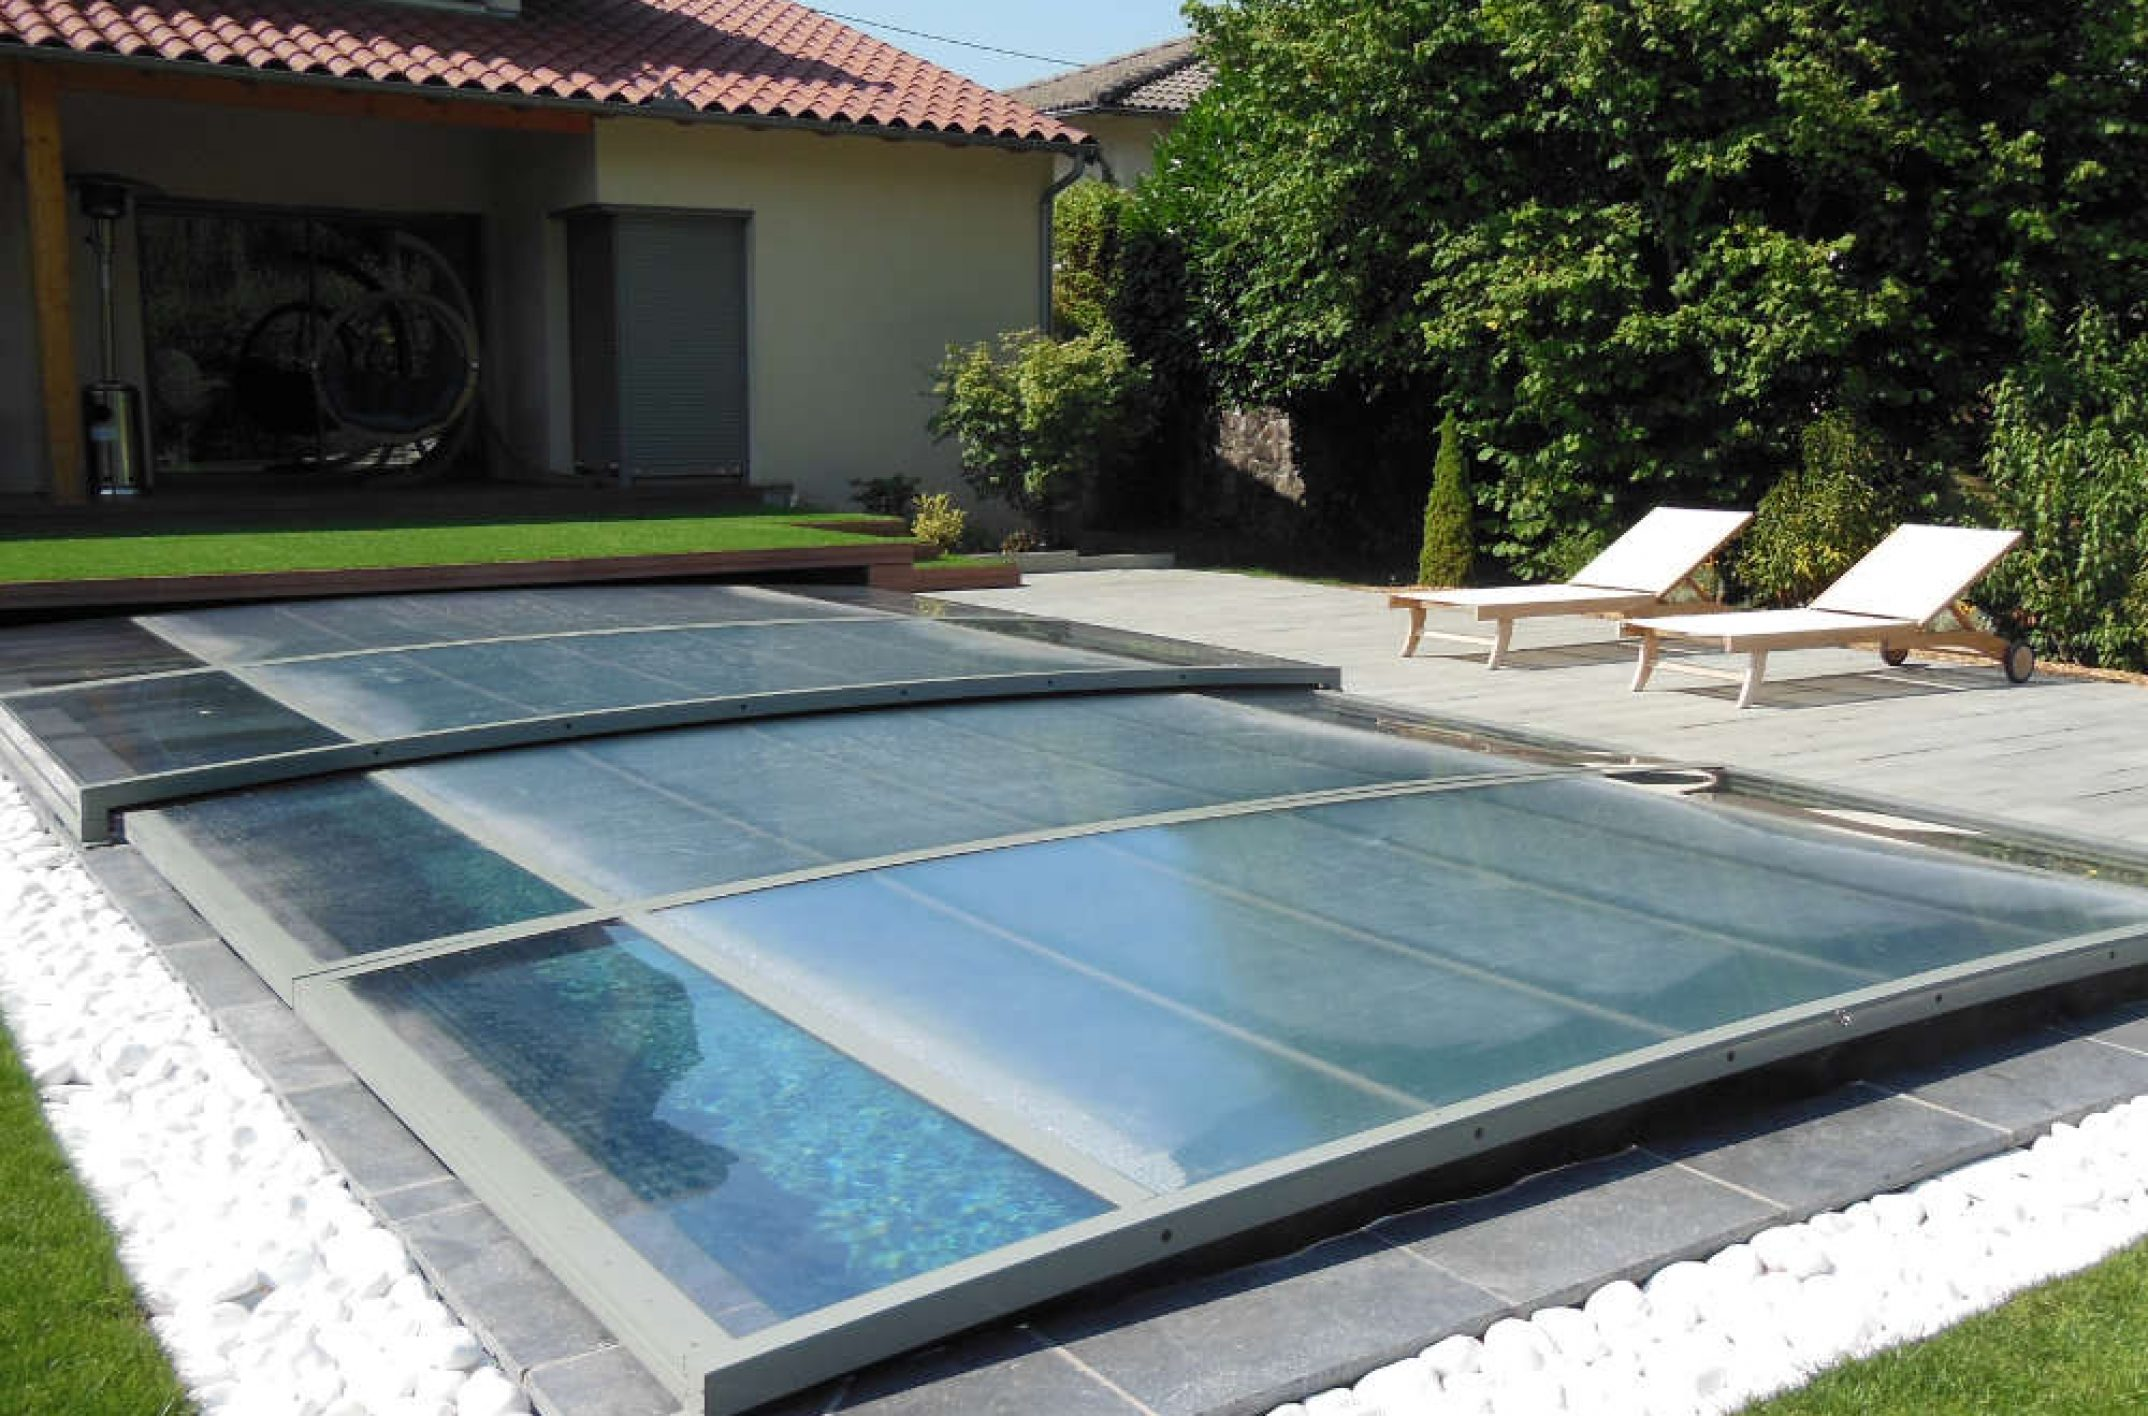 Comment faire une piscine pas cher for Piscine arc 1800